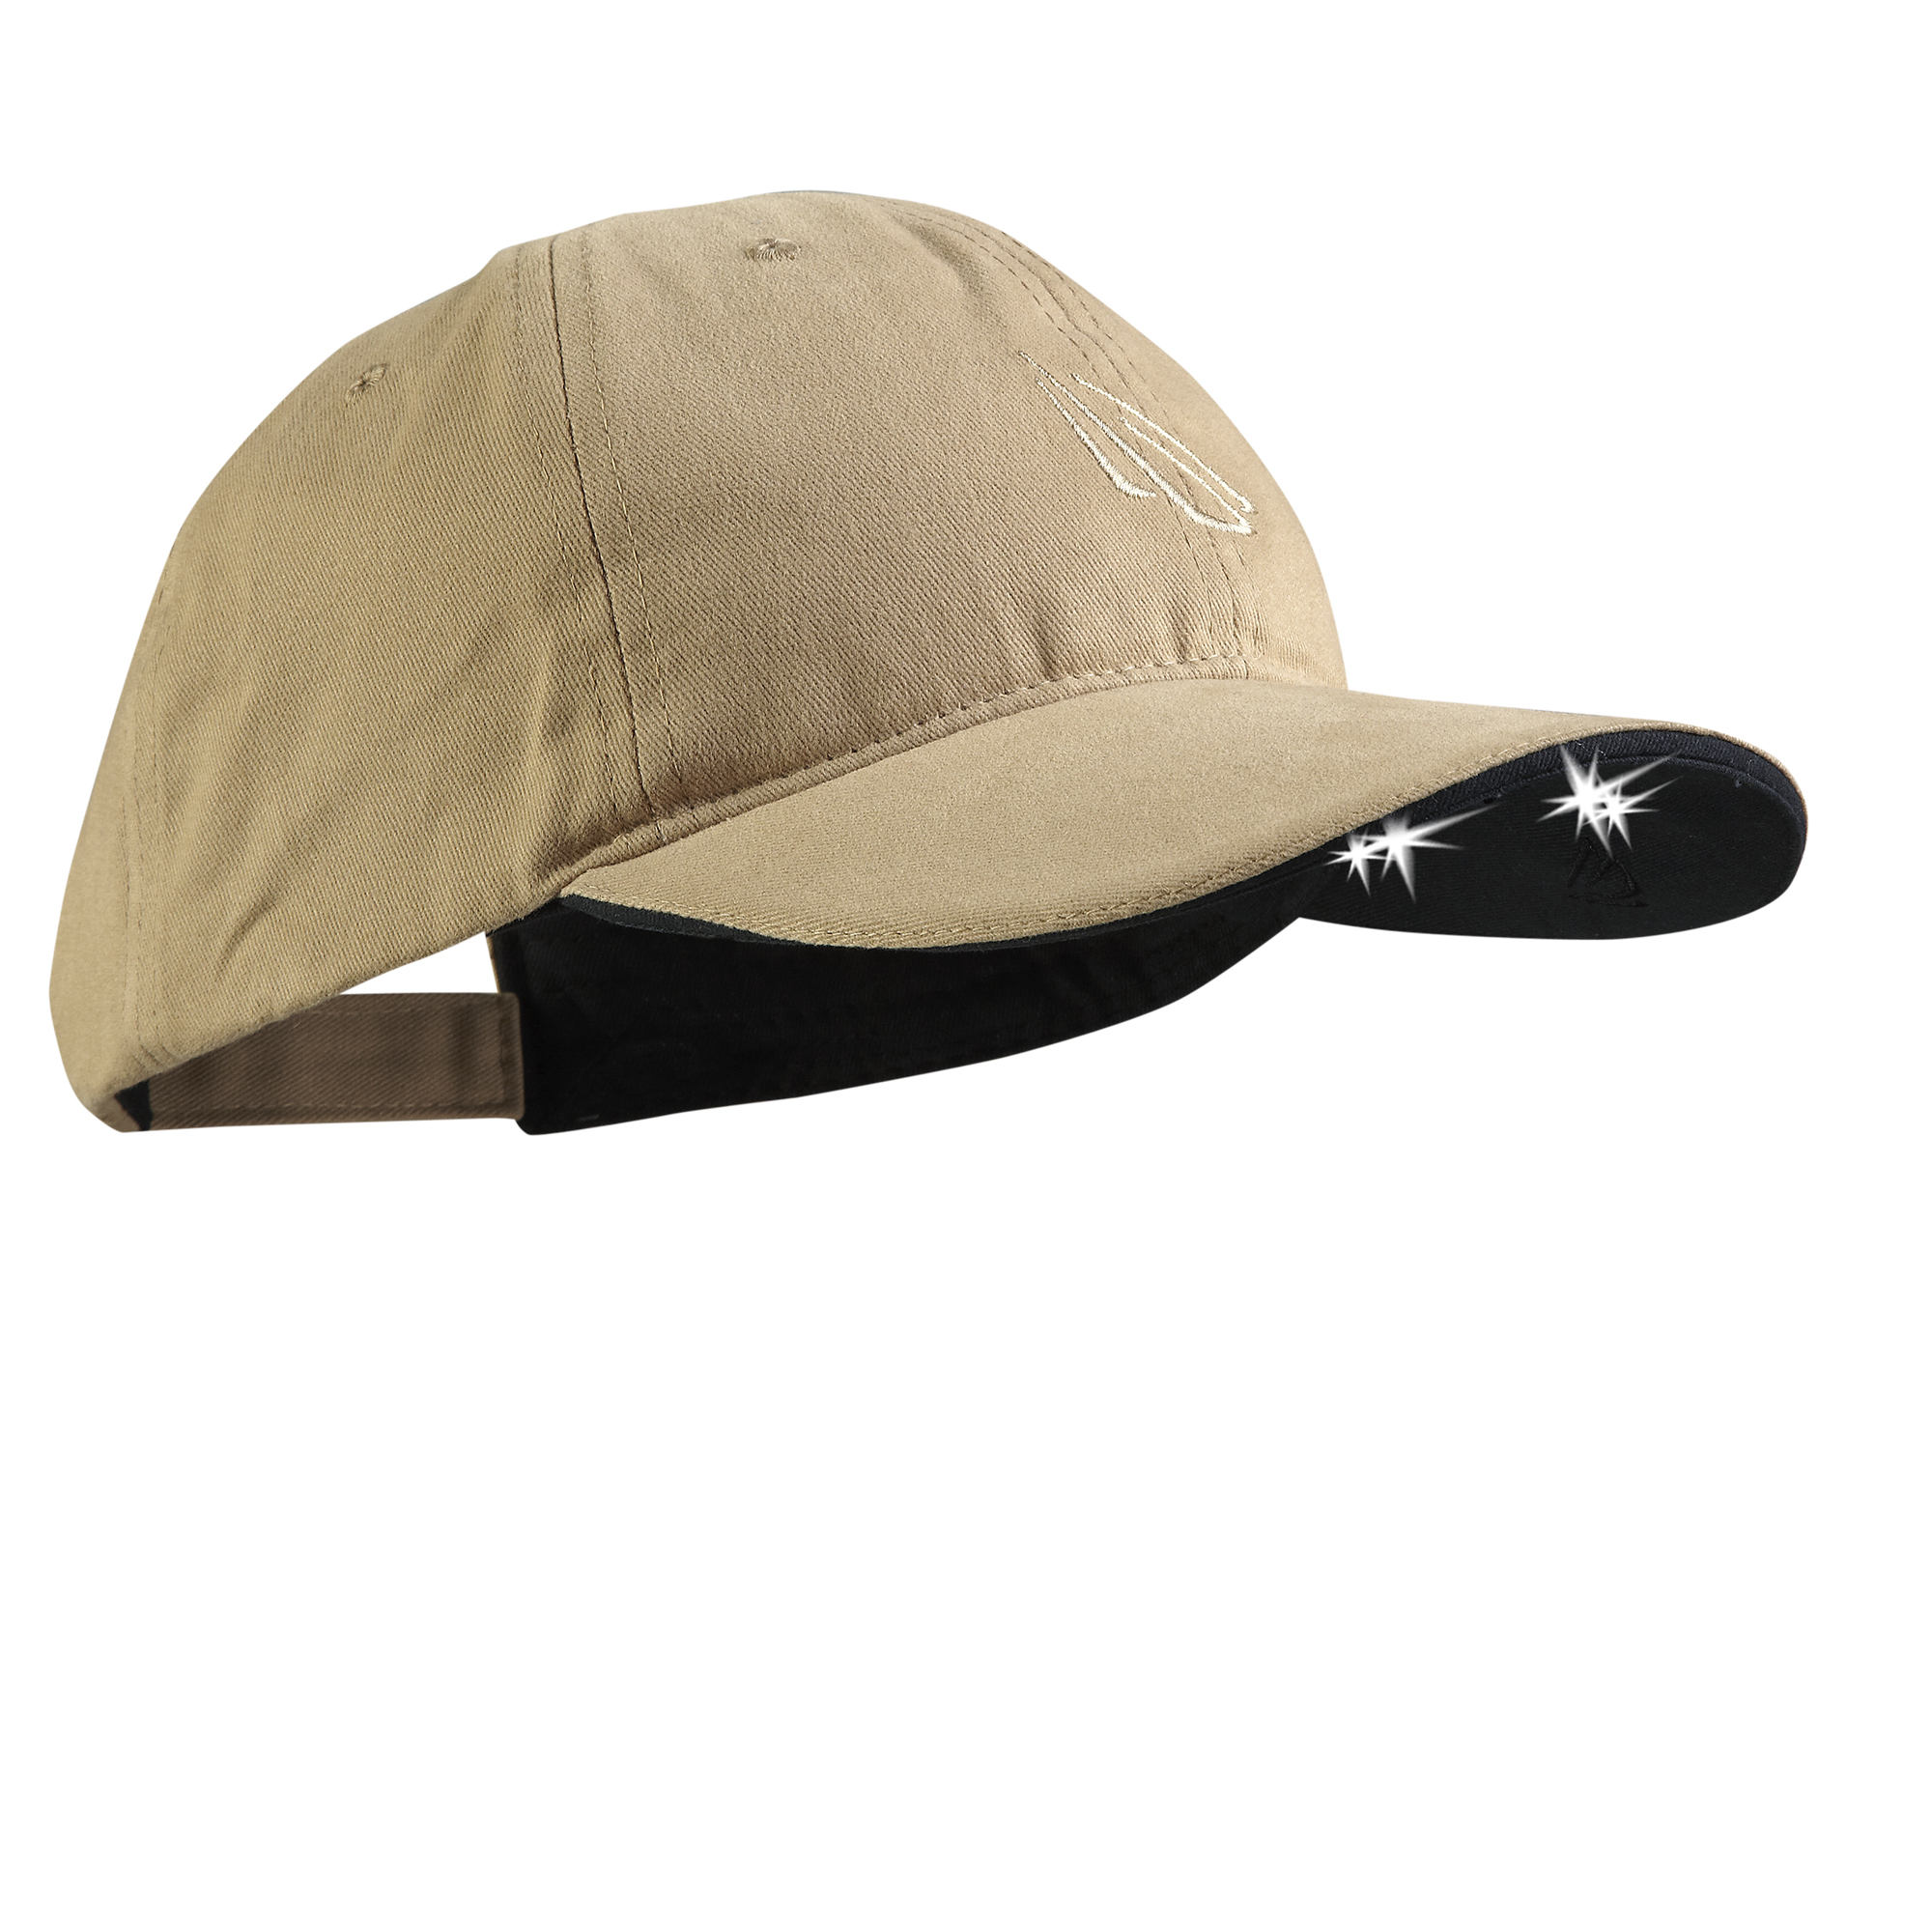 Powercap  2510 Structured Cotton Hat with LED lights, Khaki